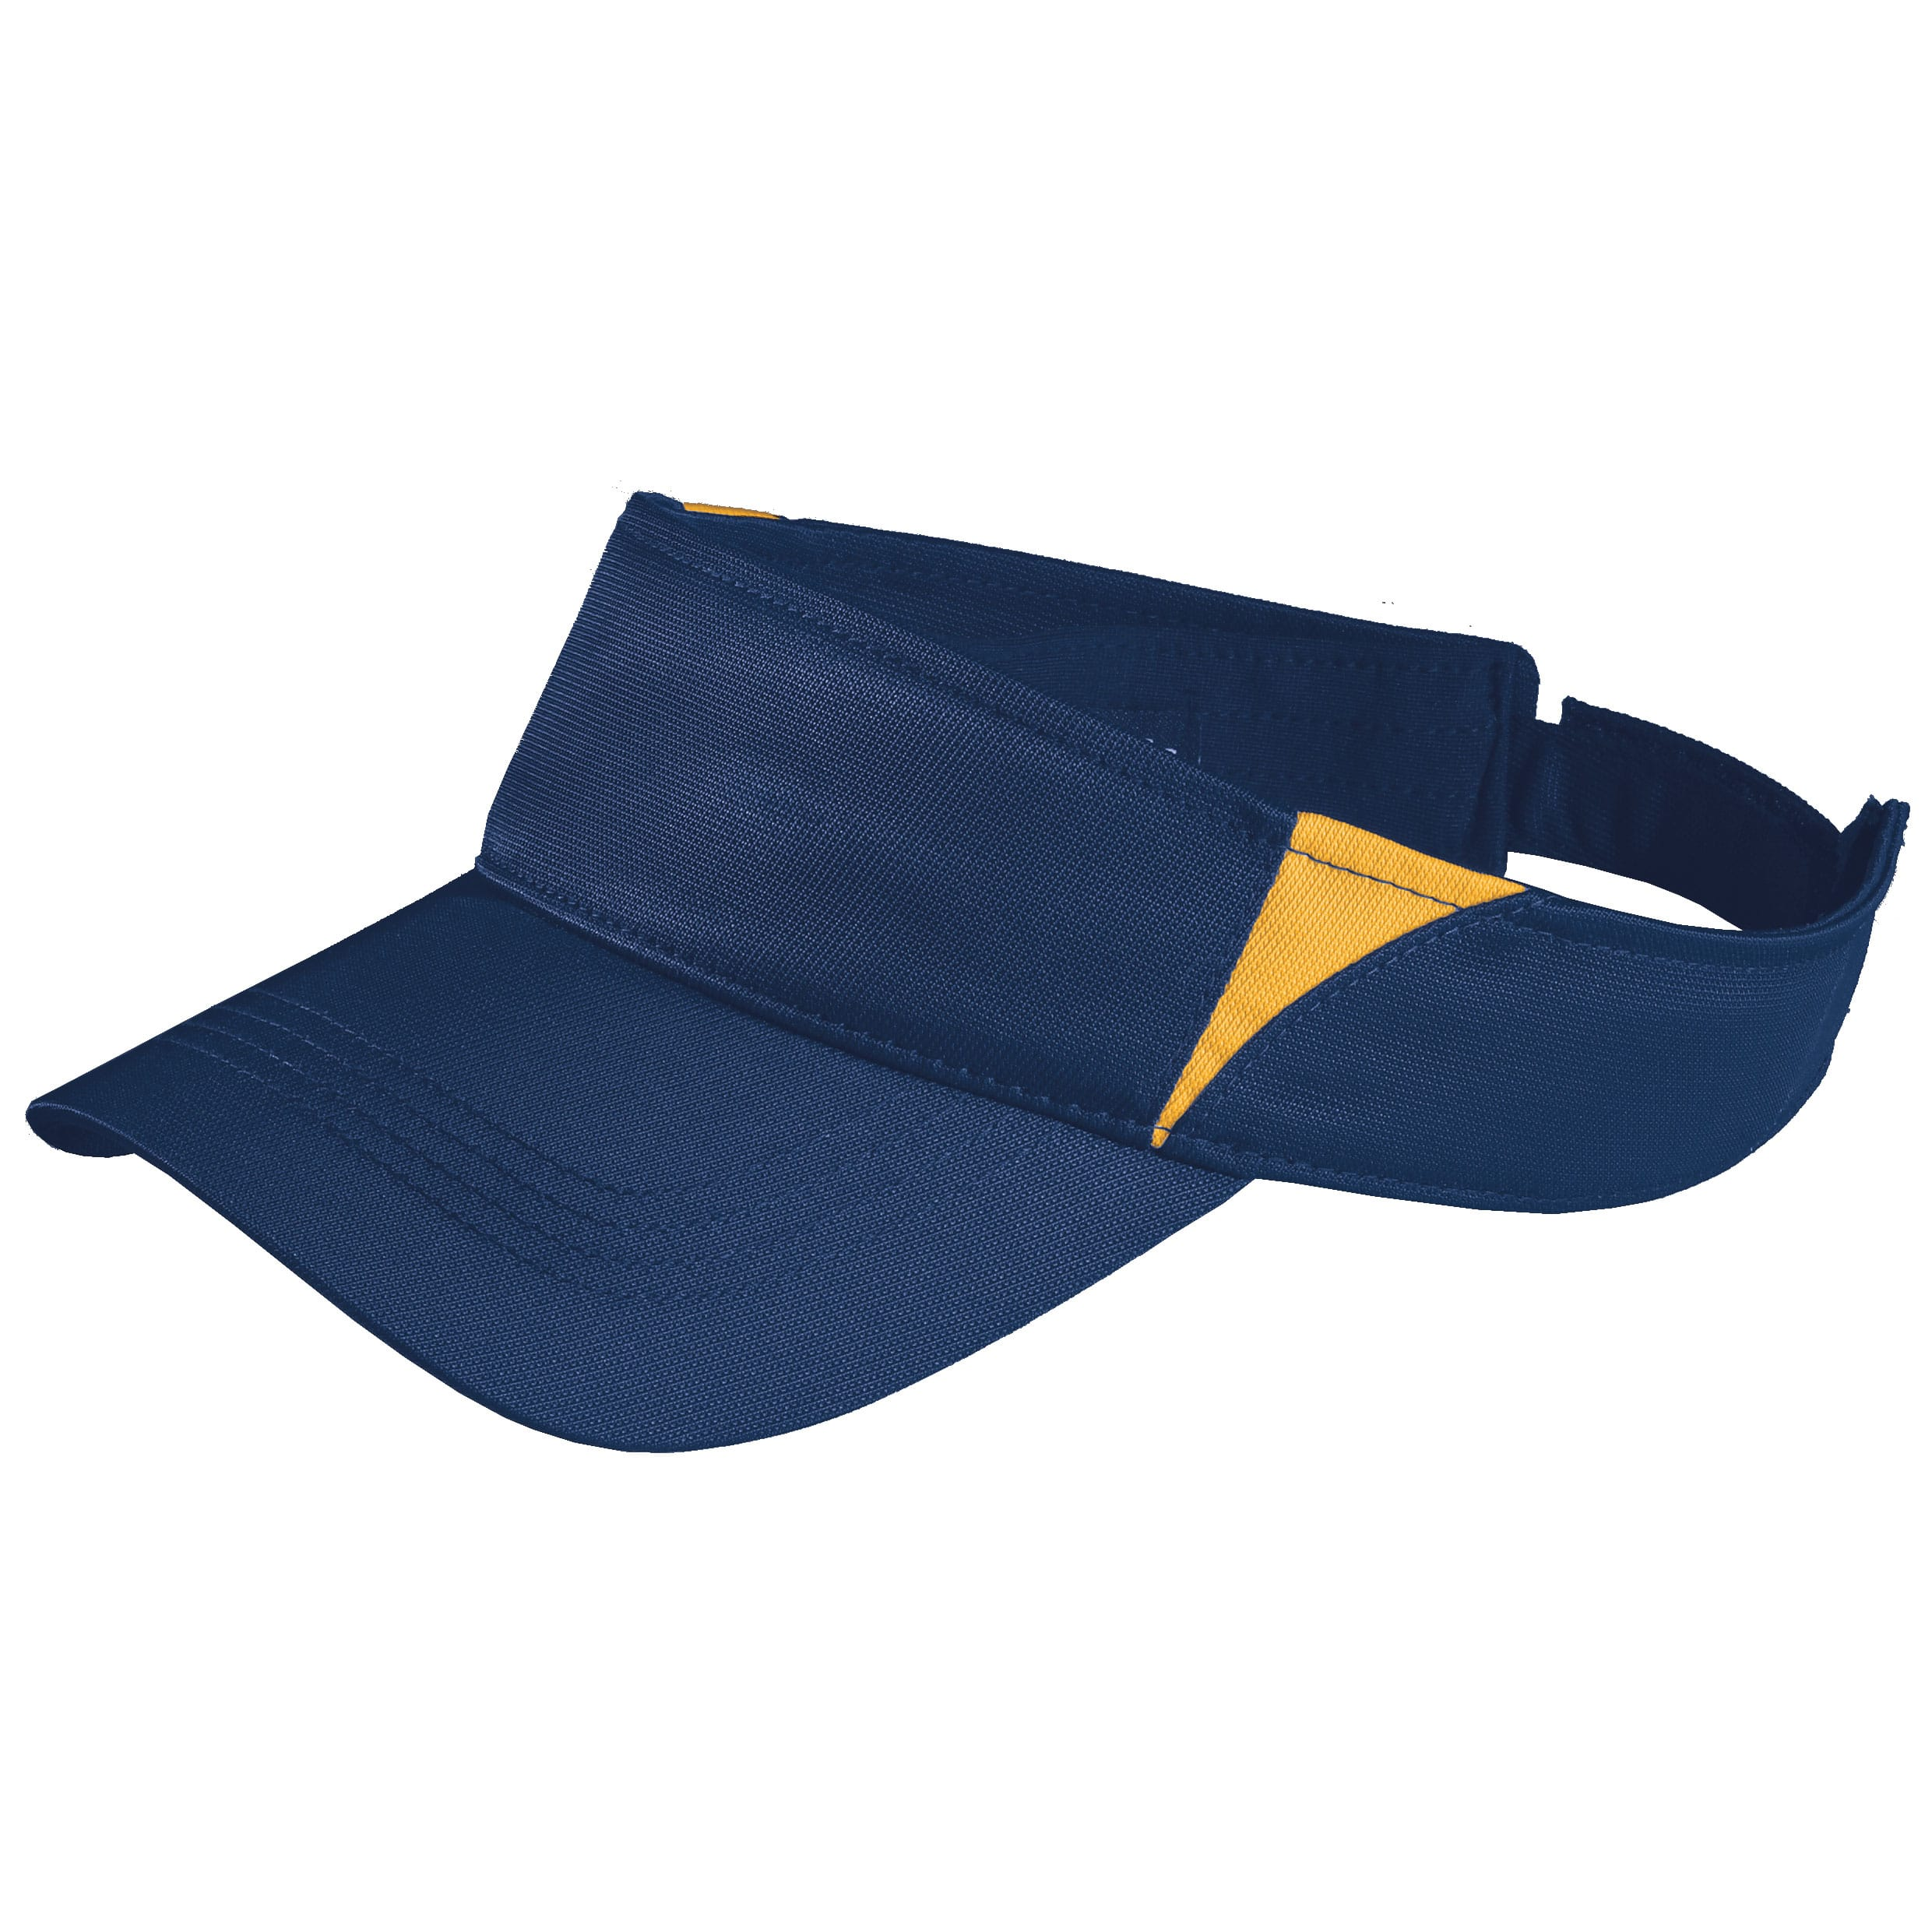 Sun Visor Dry Zone Two color tone